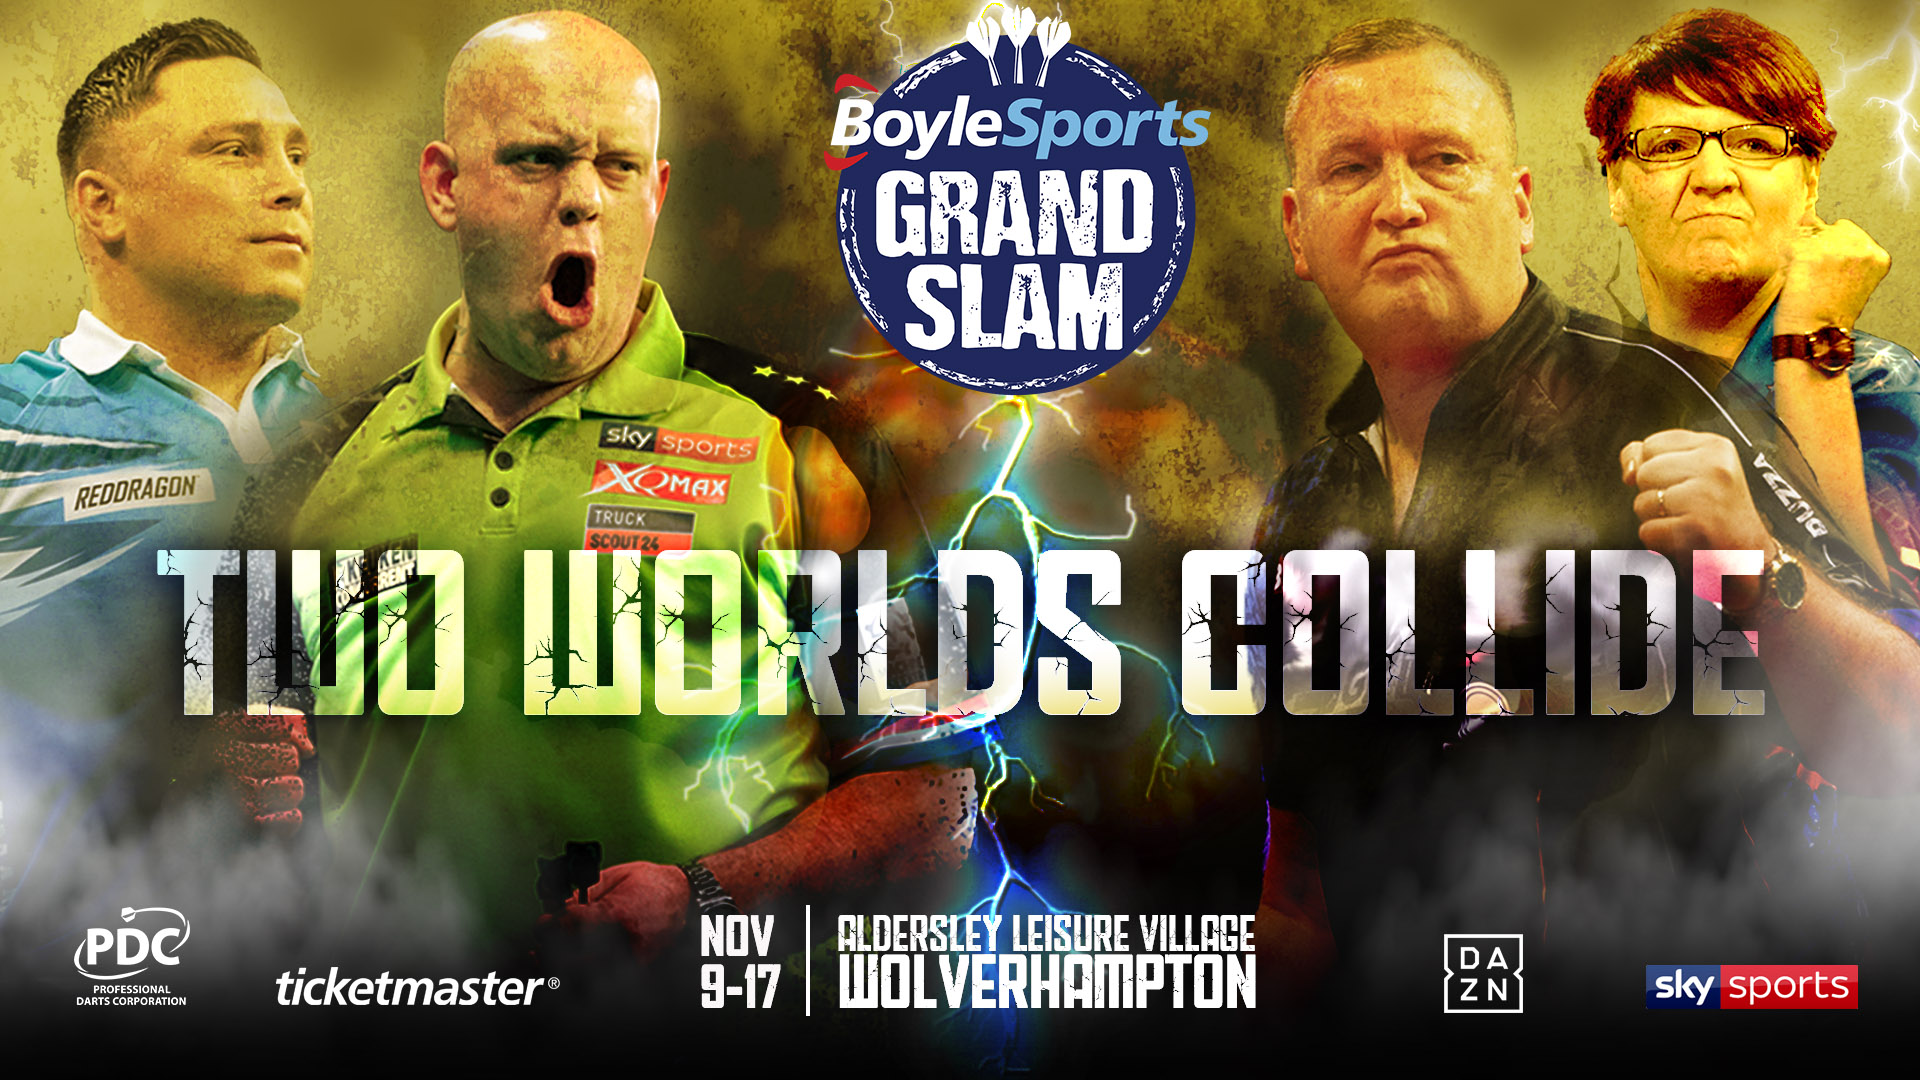 Image for - 2019 BoyleSports Grand Slam Of Darts at Aldersley Leisure Village